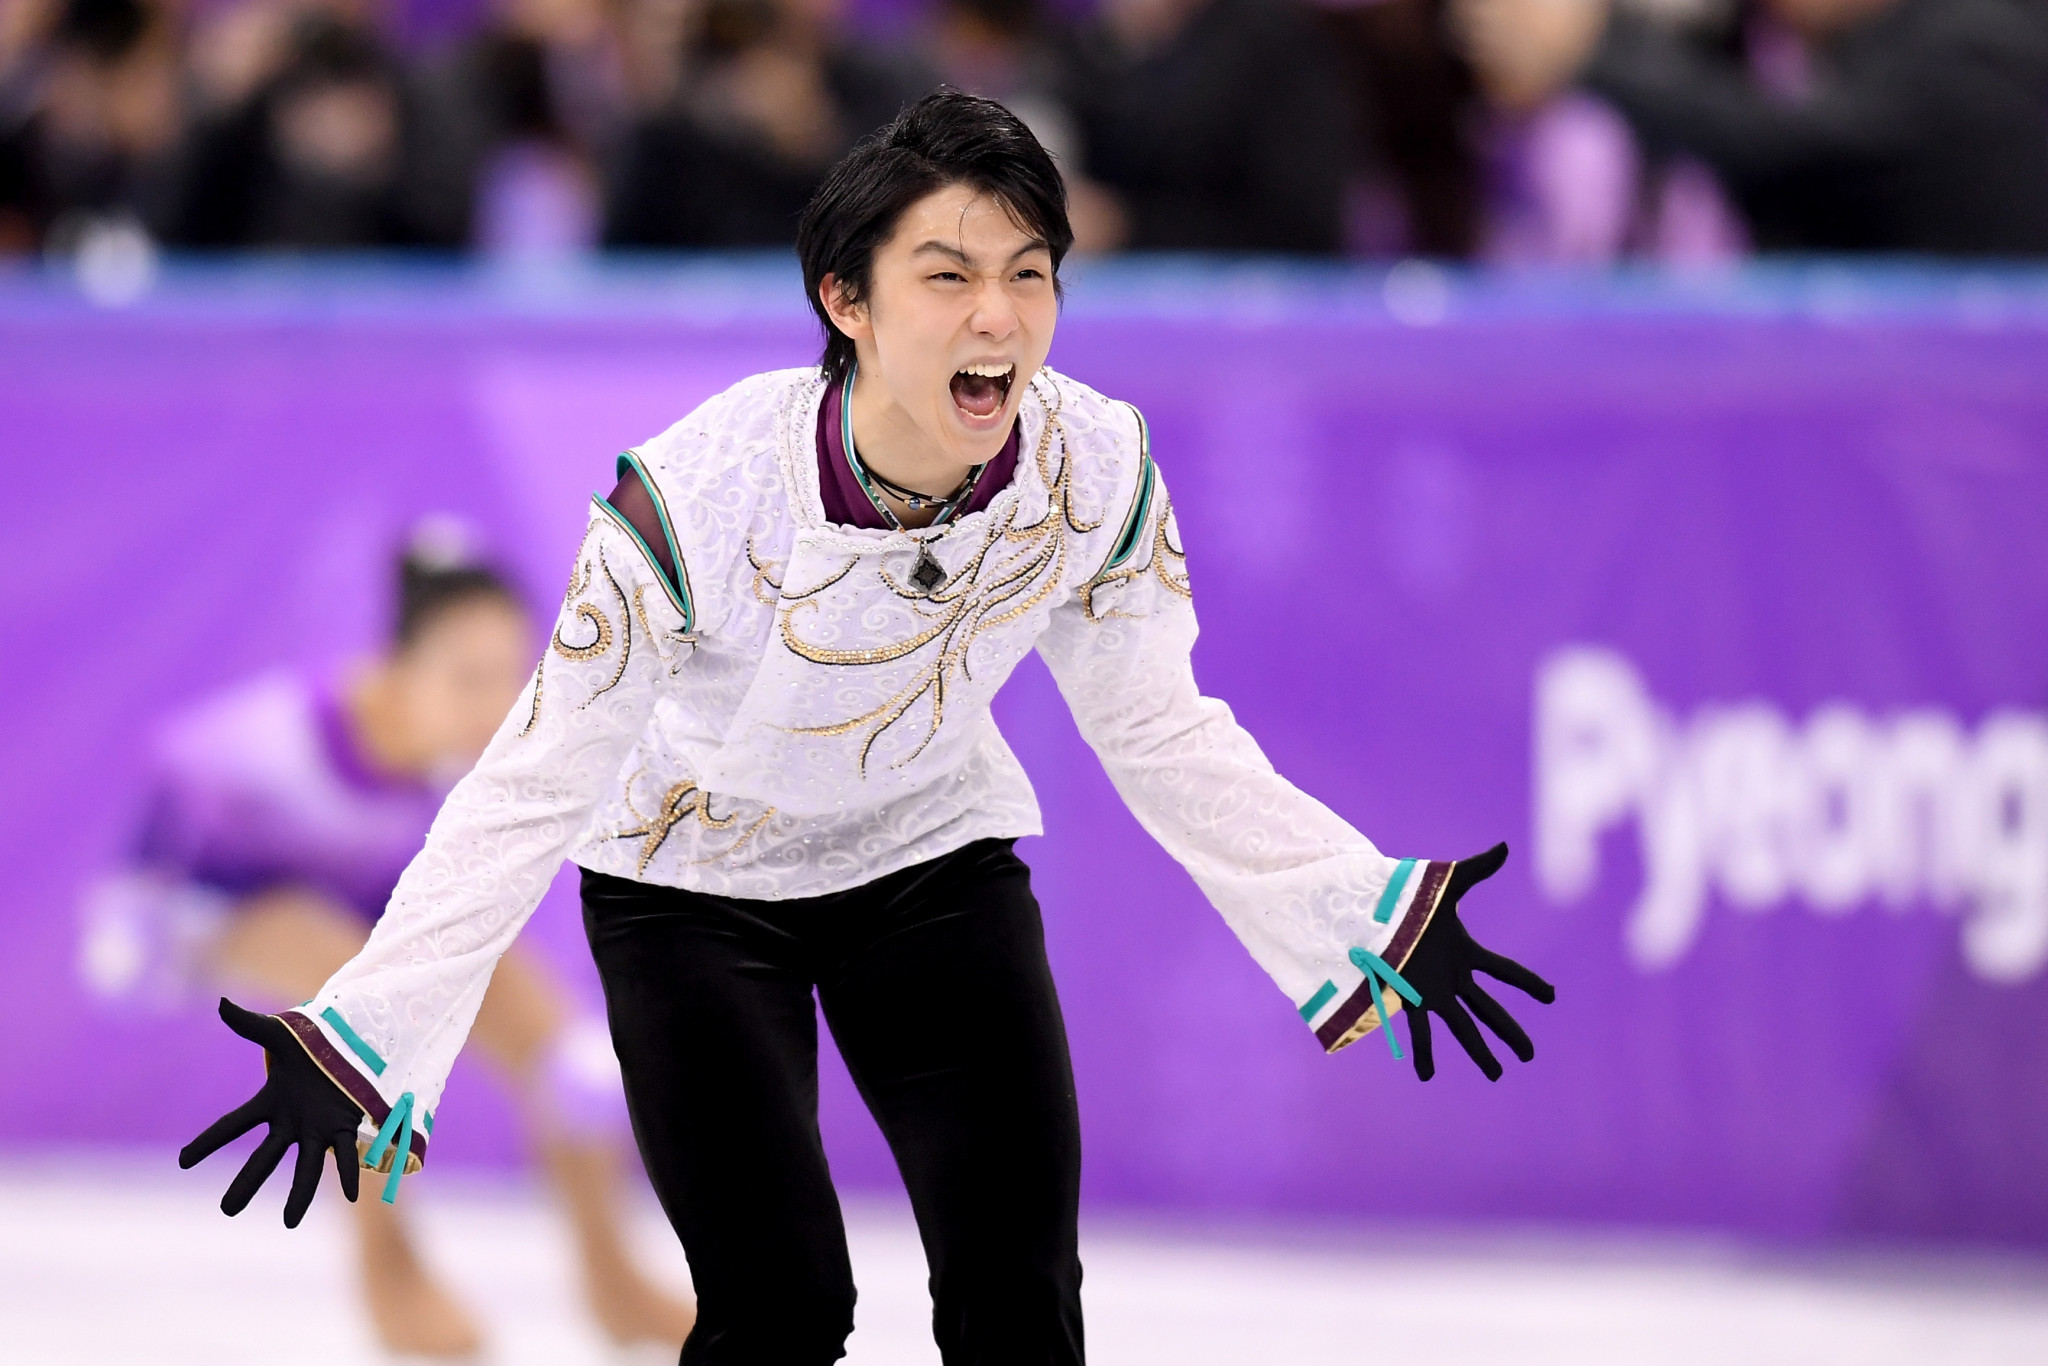 Yuzuru Hanyu has won two Olympic titles  ©Getty Images